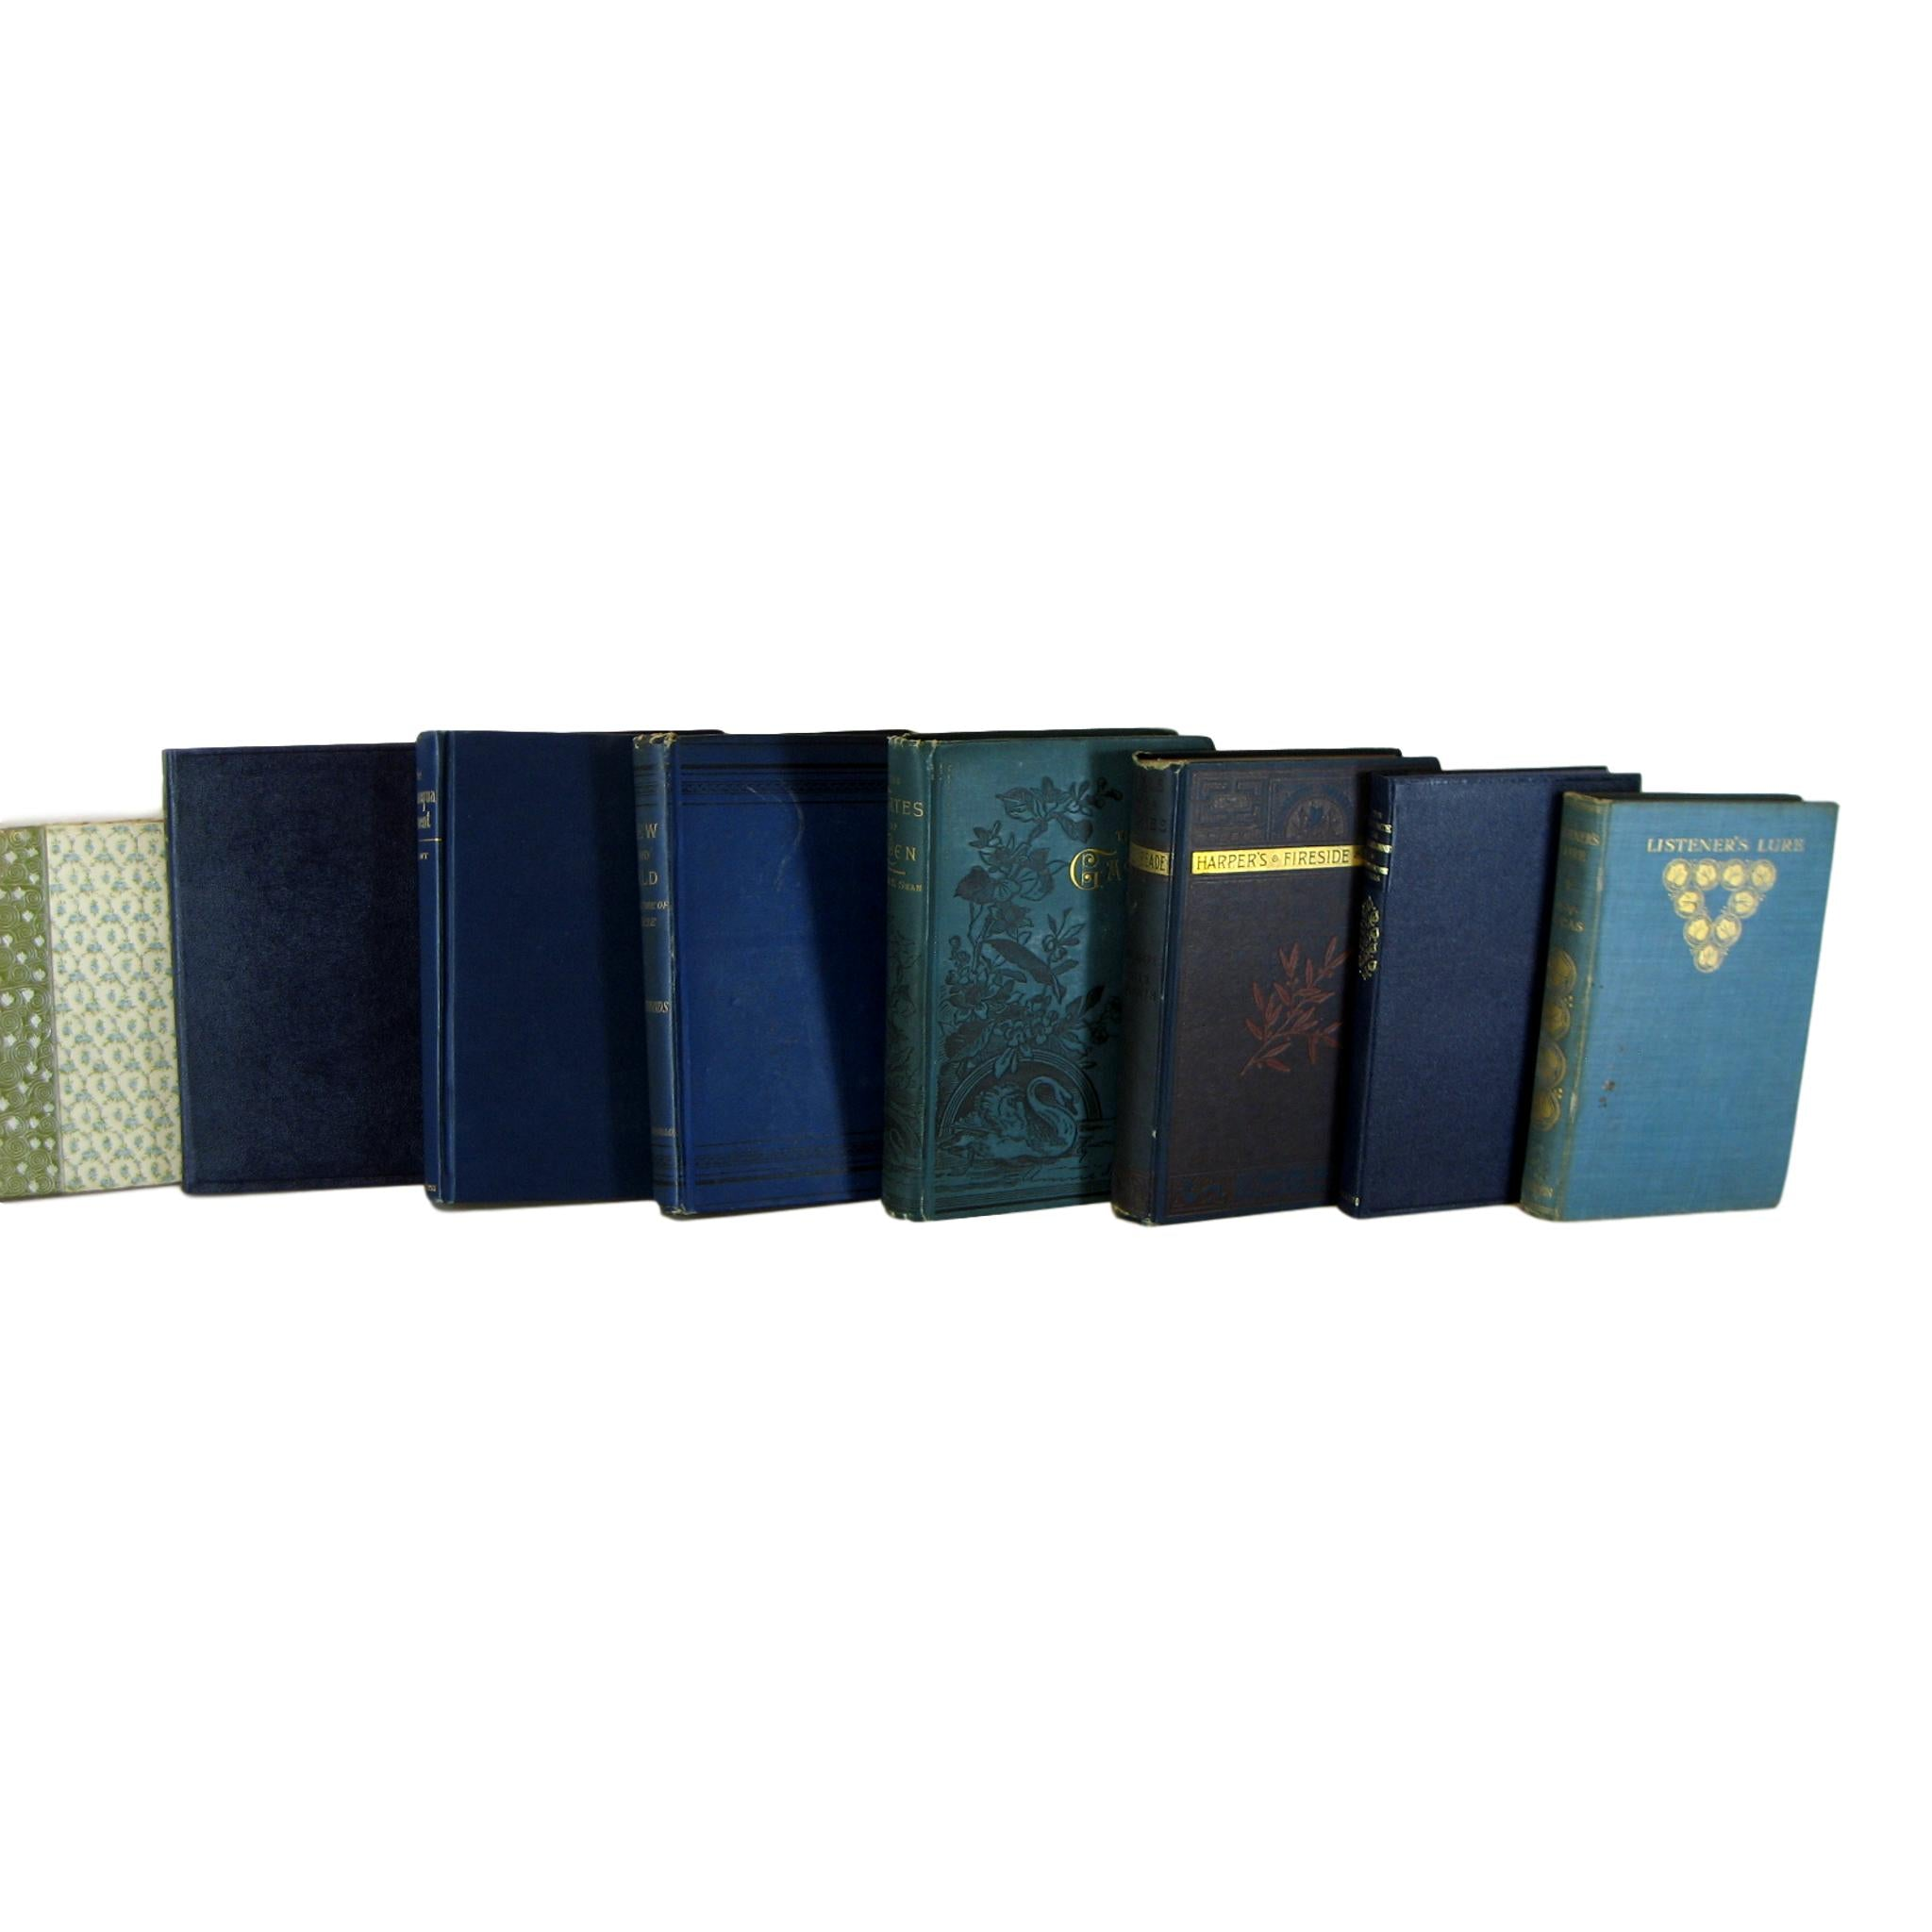 Blue and Green Decorative Books by Color for Bookshelf Decor, S/8 - Decades of Vintage